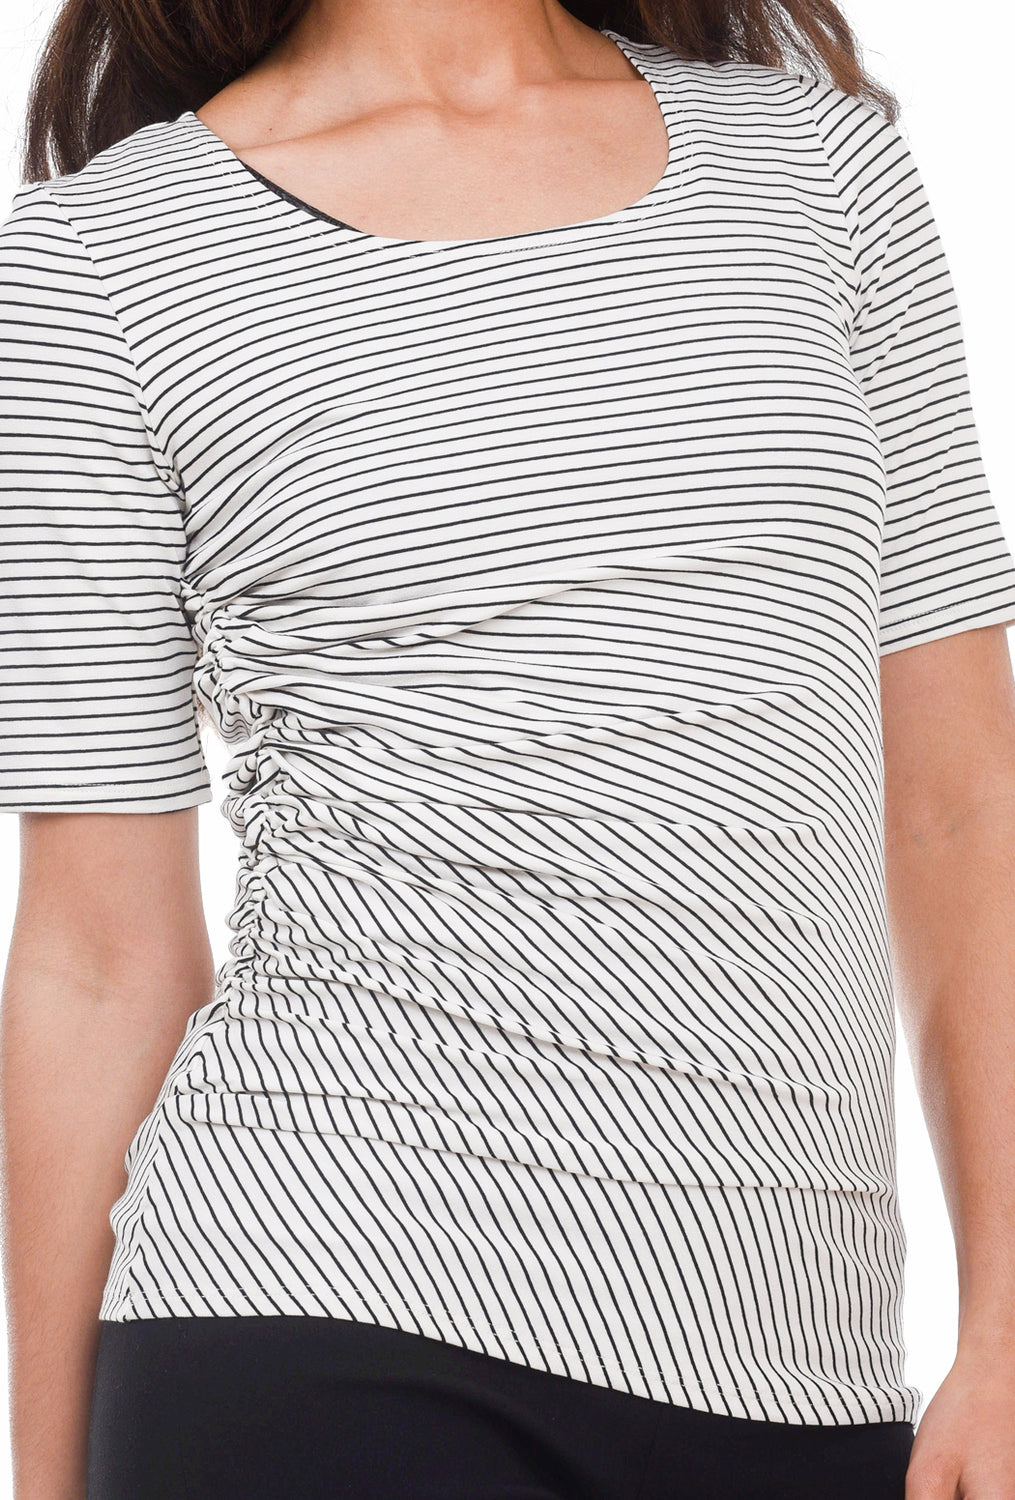 Sarah Liller Inga Top, Cloud Stripe